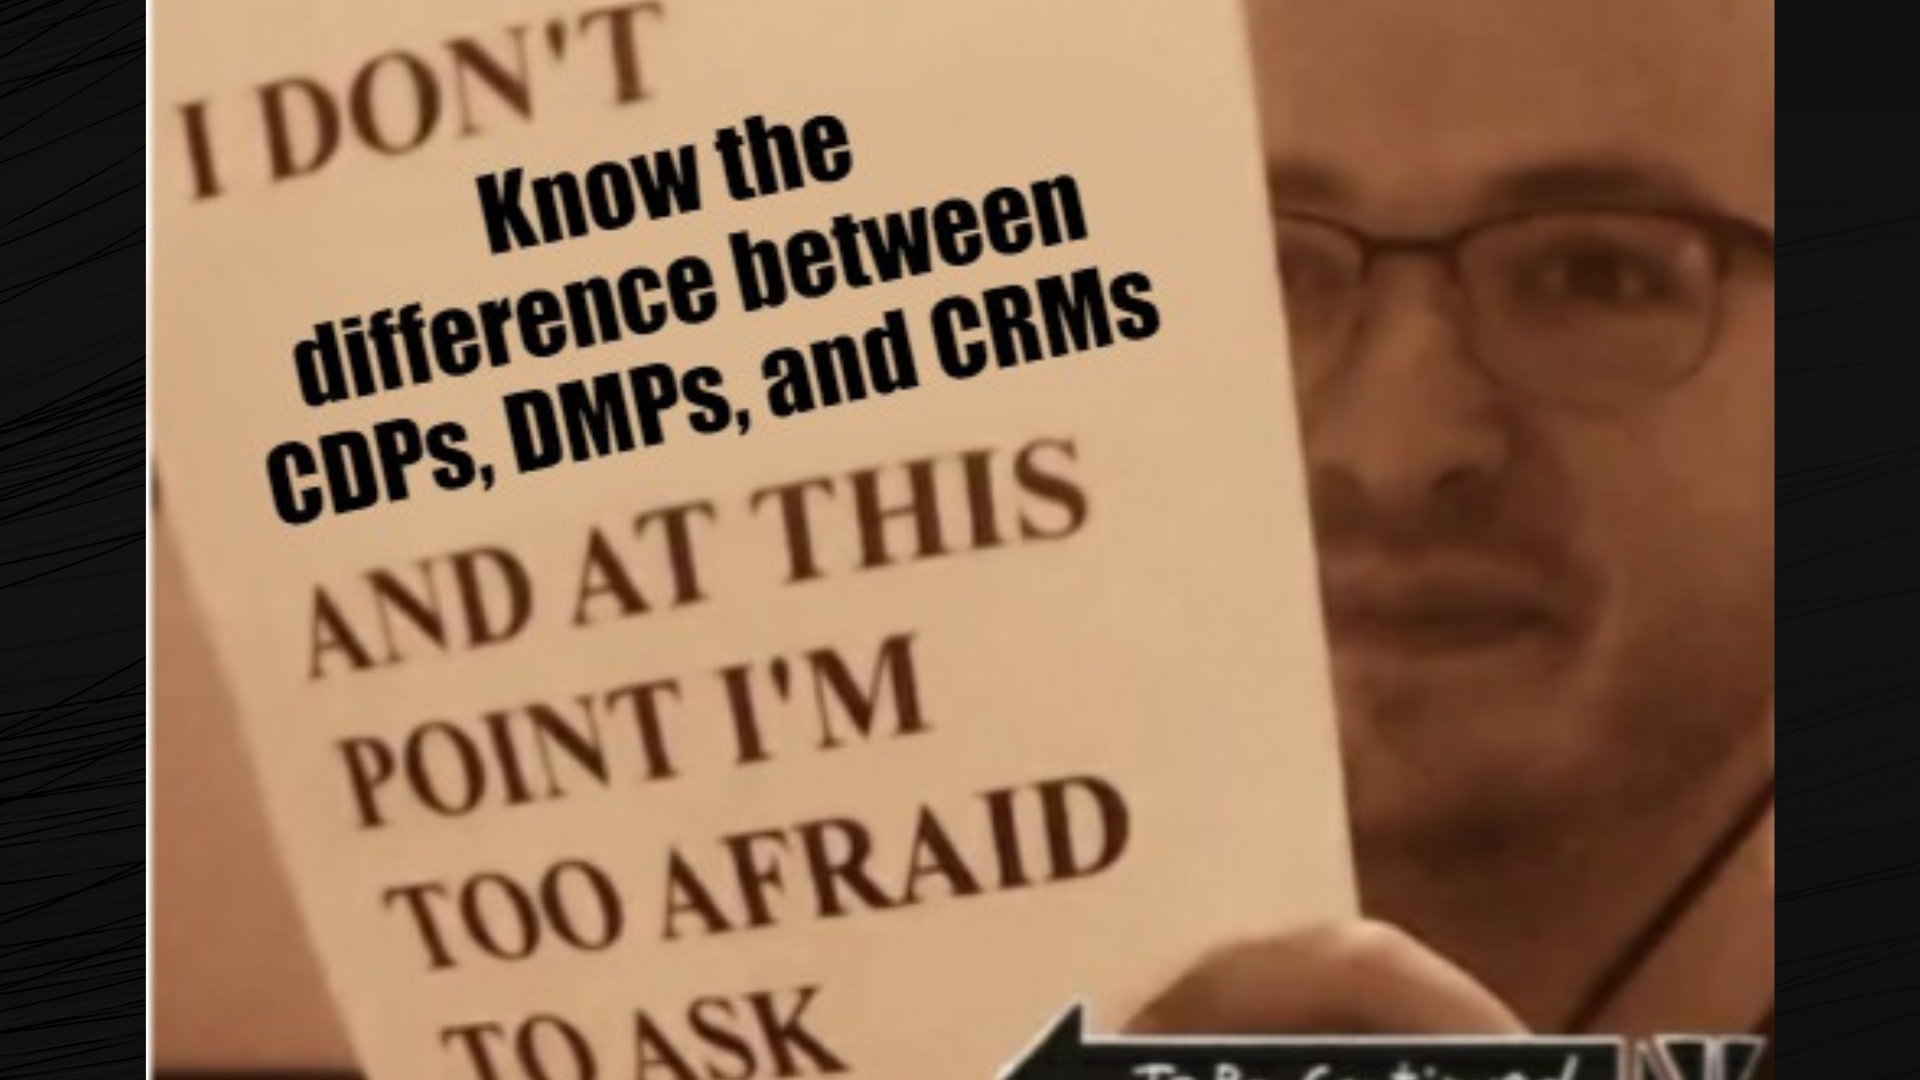 CDPs, DMPs, CRMs. What's the Difference?